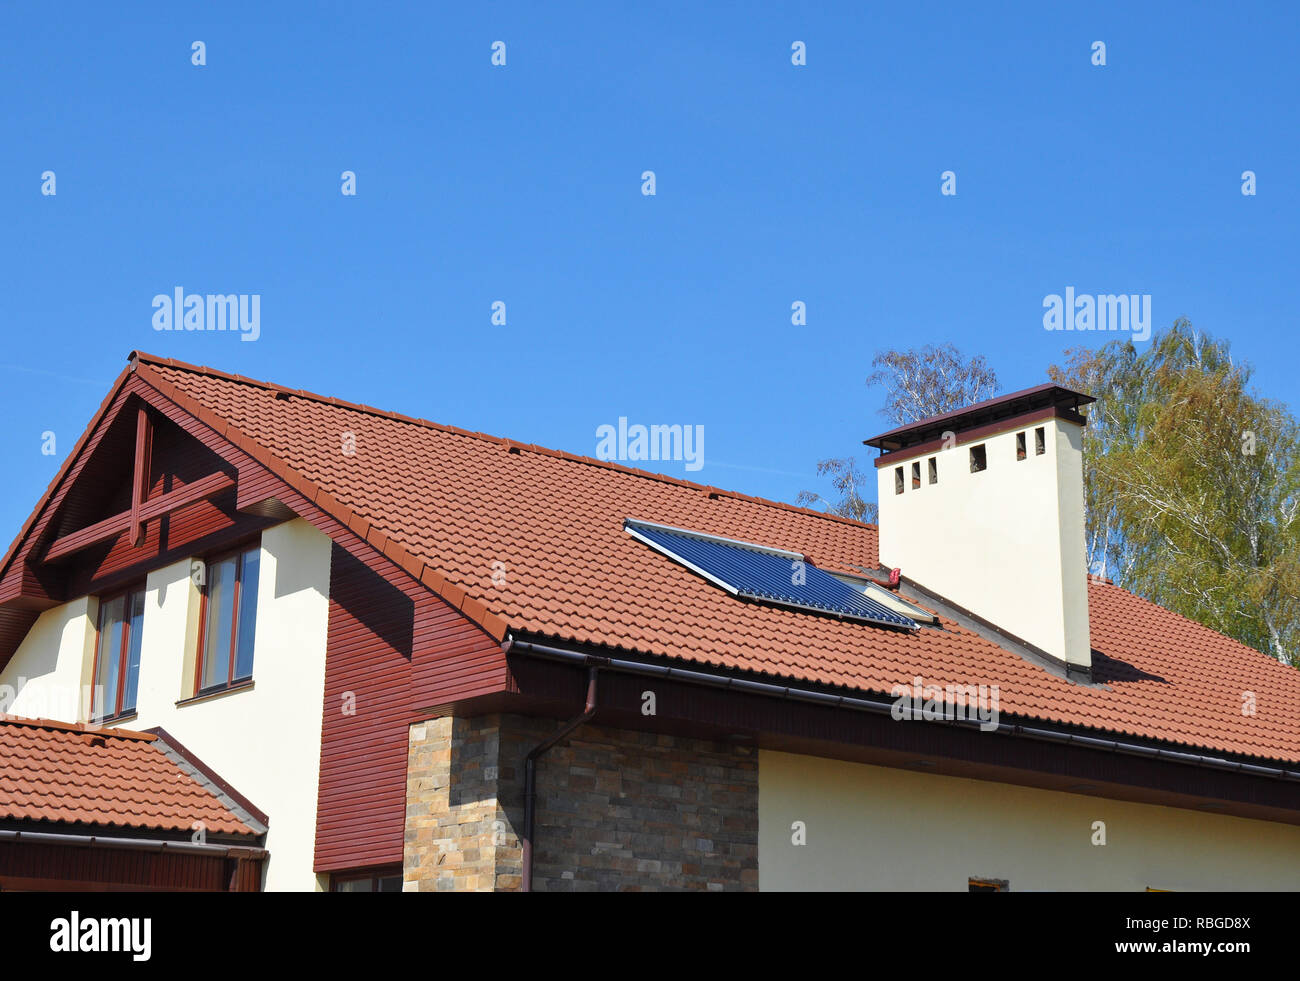 Energy Efficiency New Passive House Building Concept Exterior. Cozy house Roofing with Vacuum Solar Water Panel Heating, Solar Panels, Skylights Outdo - Stock Image